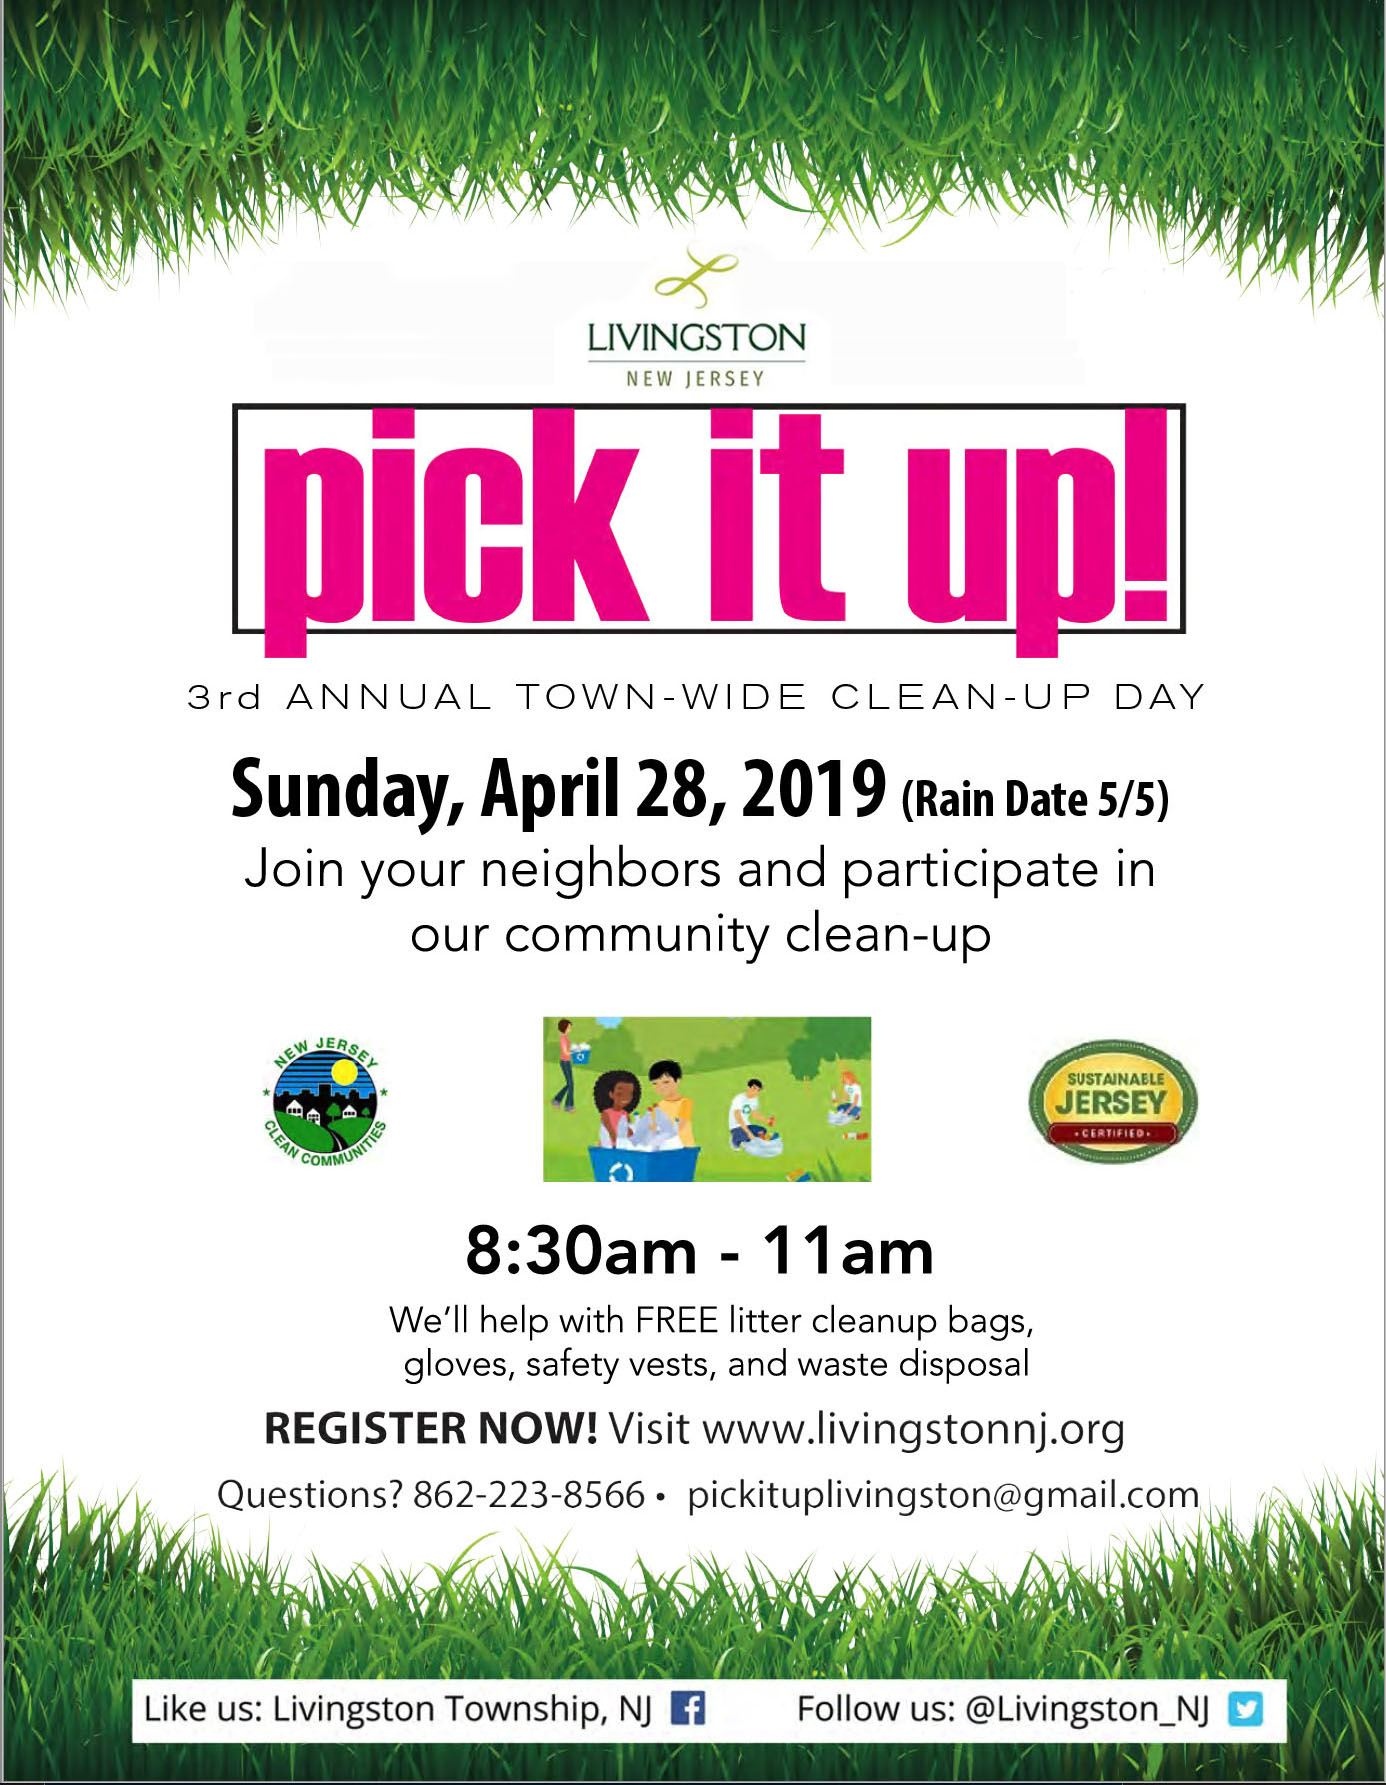 Image of flyer for Livingston&#39s annual Town-Wide Clean-Up event on April 28, 2019